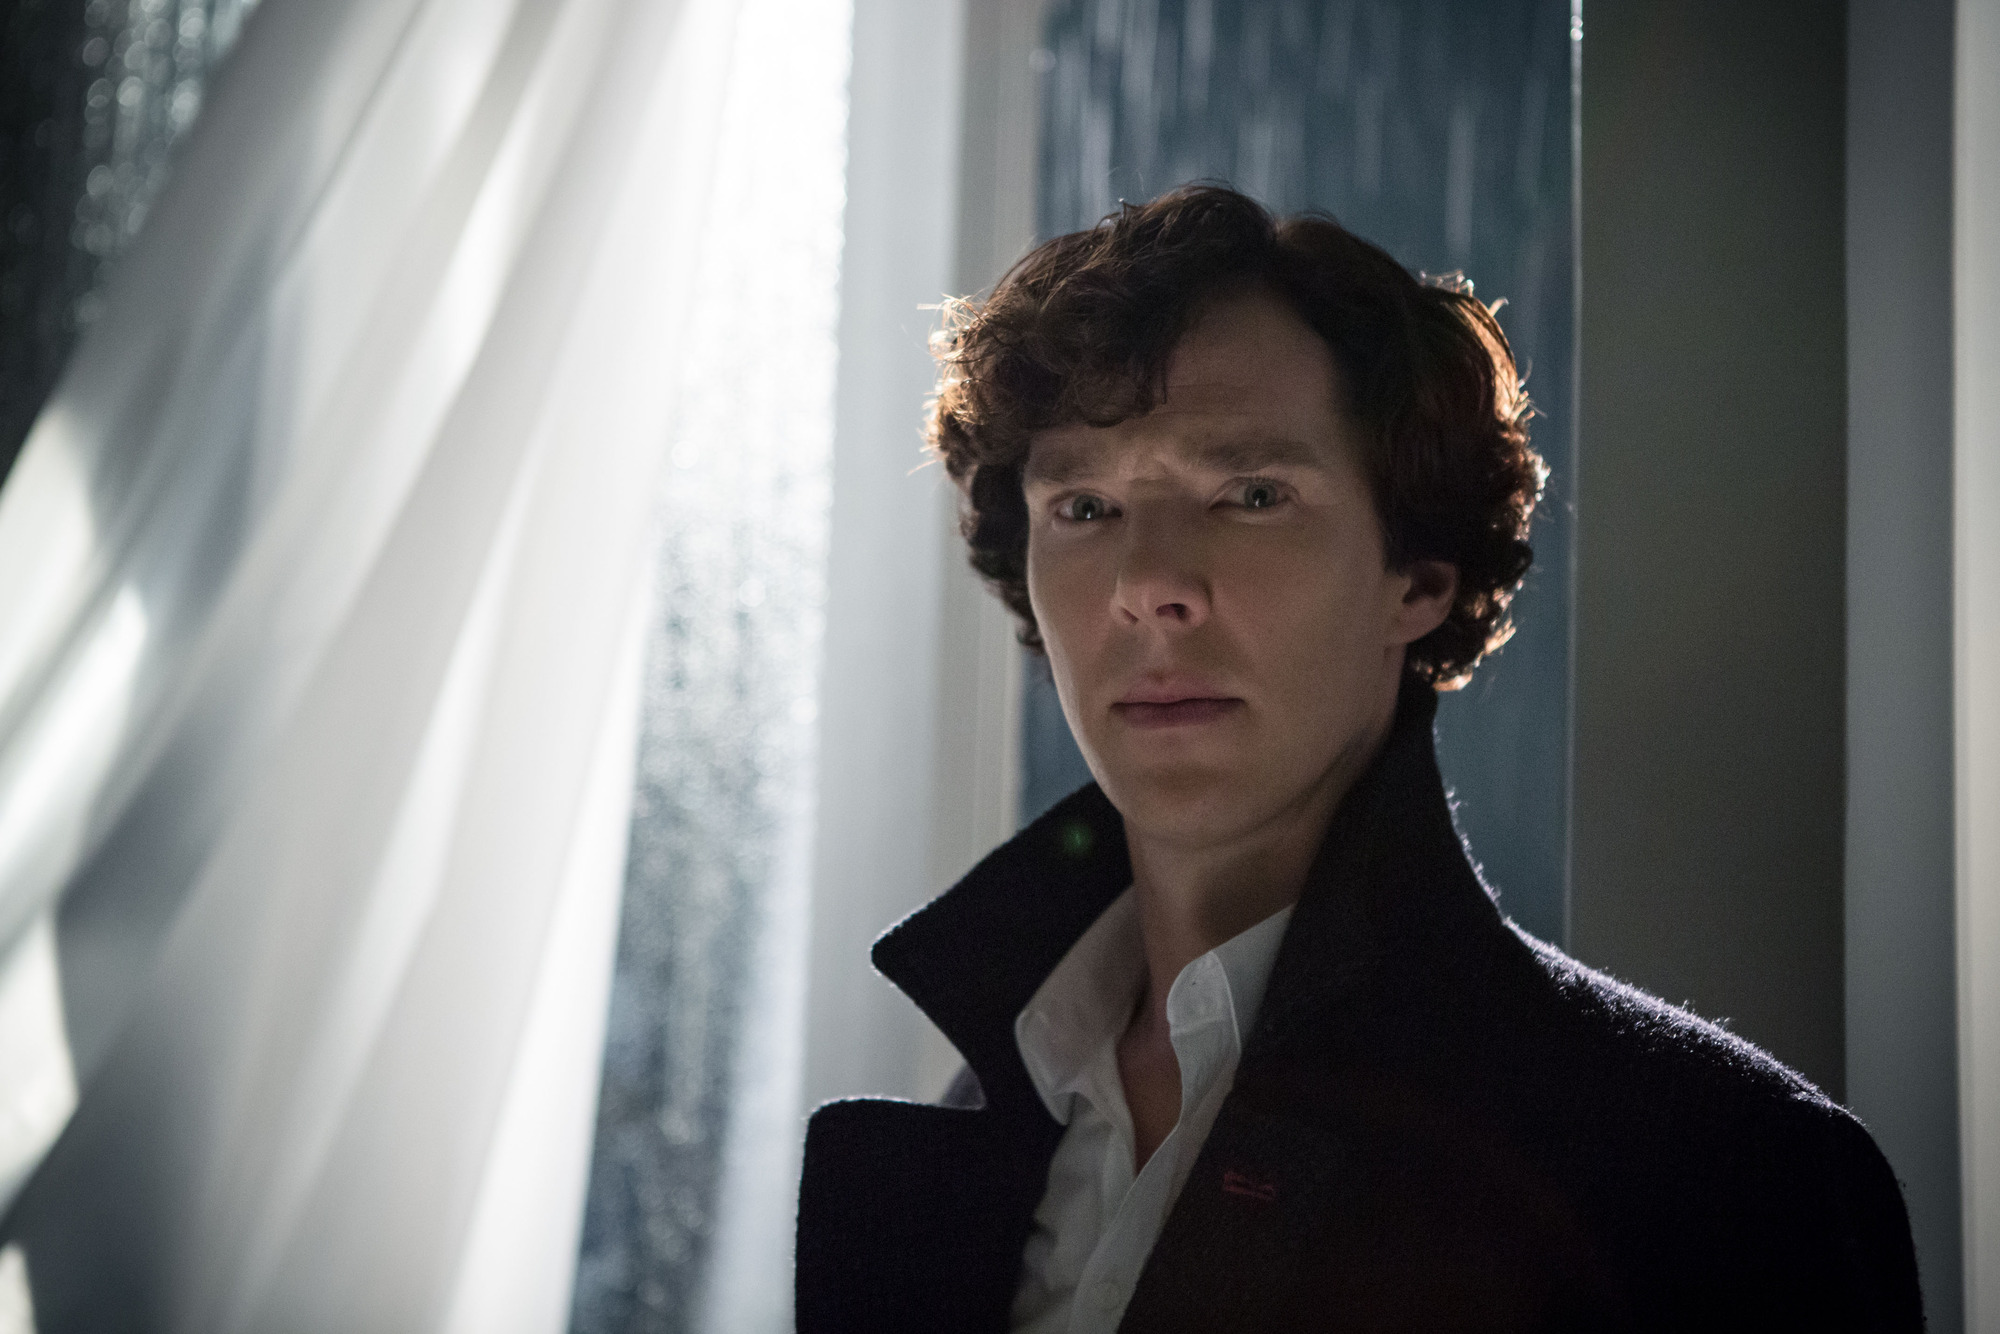 Sherlock season four: Is Moriarty alive? Will a major character die? Let the speculation begin!